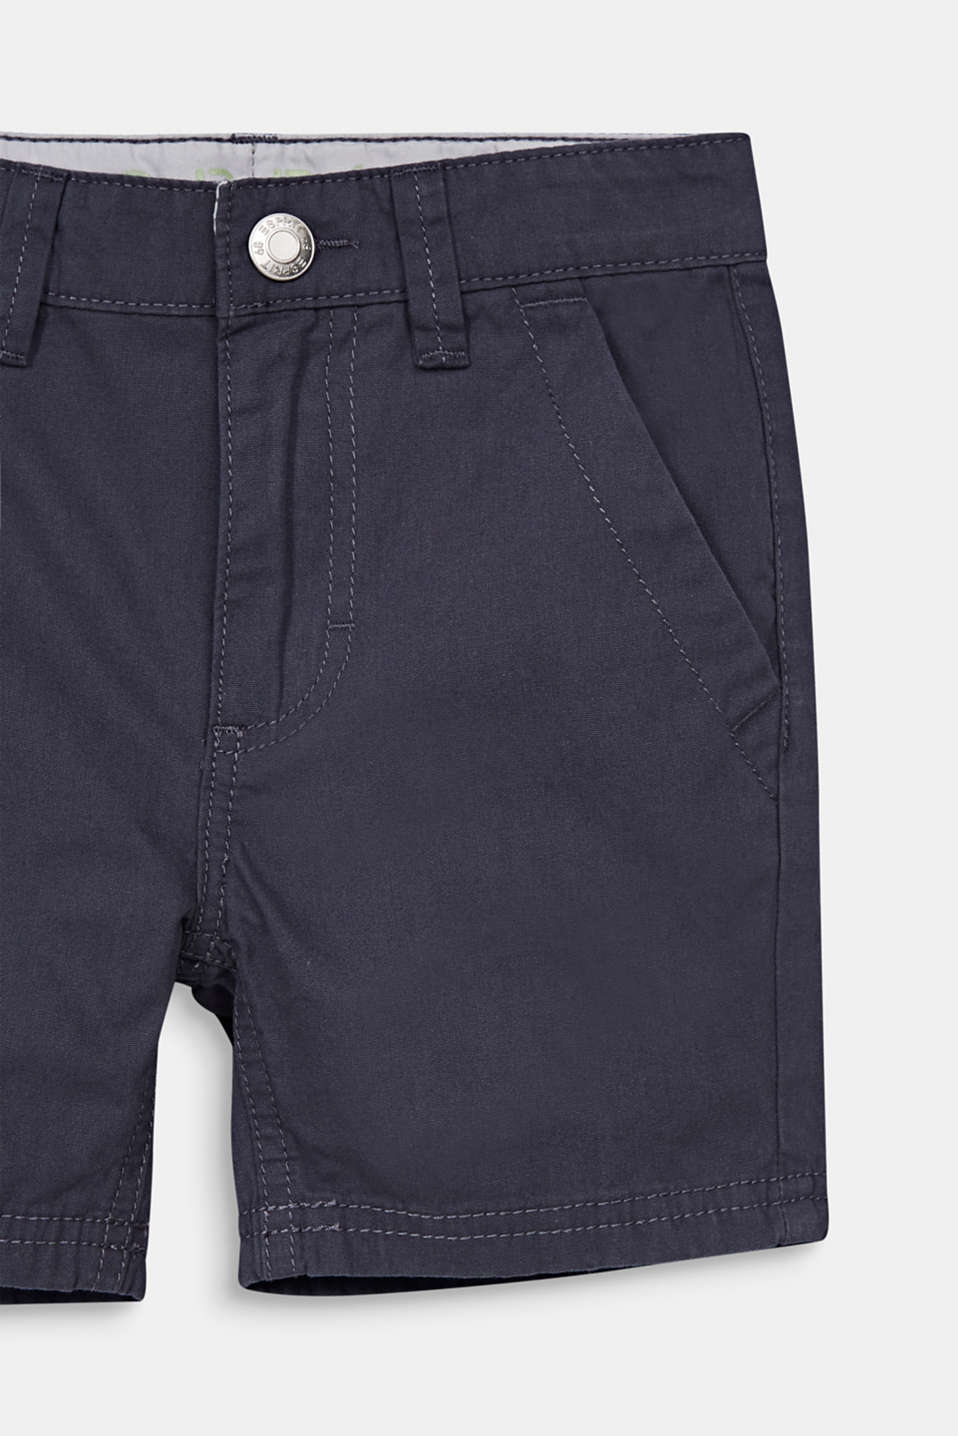 Woven shorts in 100% cotton, ANTHRACITE, detail image number 2